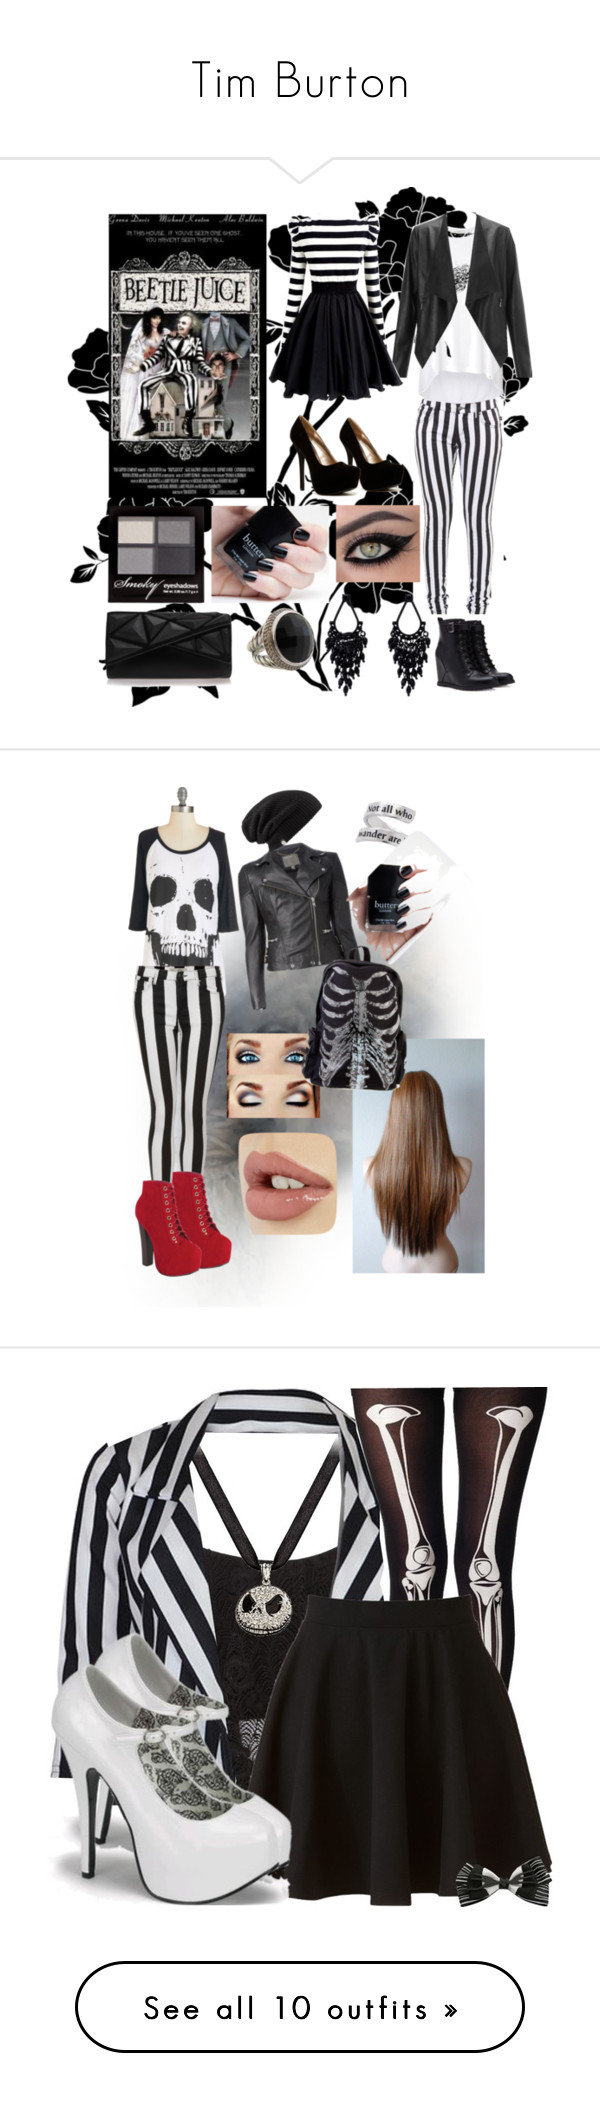 """Tim Burton"" by ericmyri ❤ liked on Polyvore featuring Forever 21, Qupid, Witchery, Lipsy, Dabuwawa, H&M, Oasis, David Yurman, Vince Camuto and Topshop"